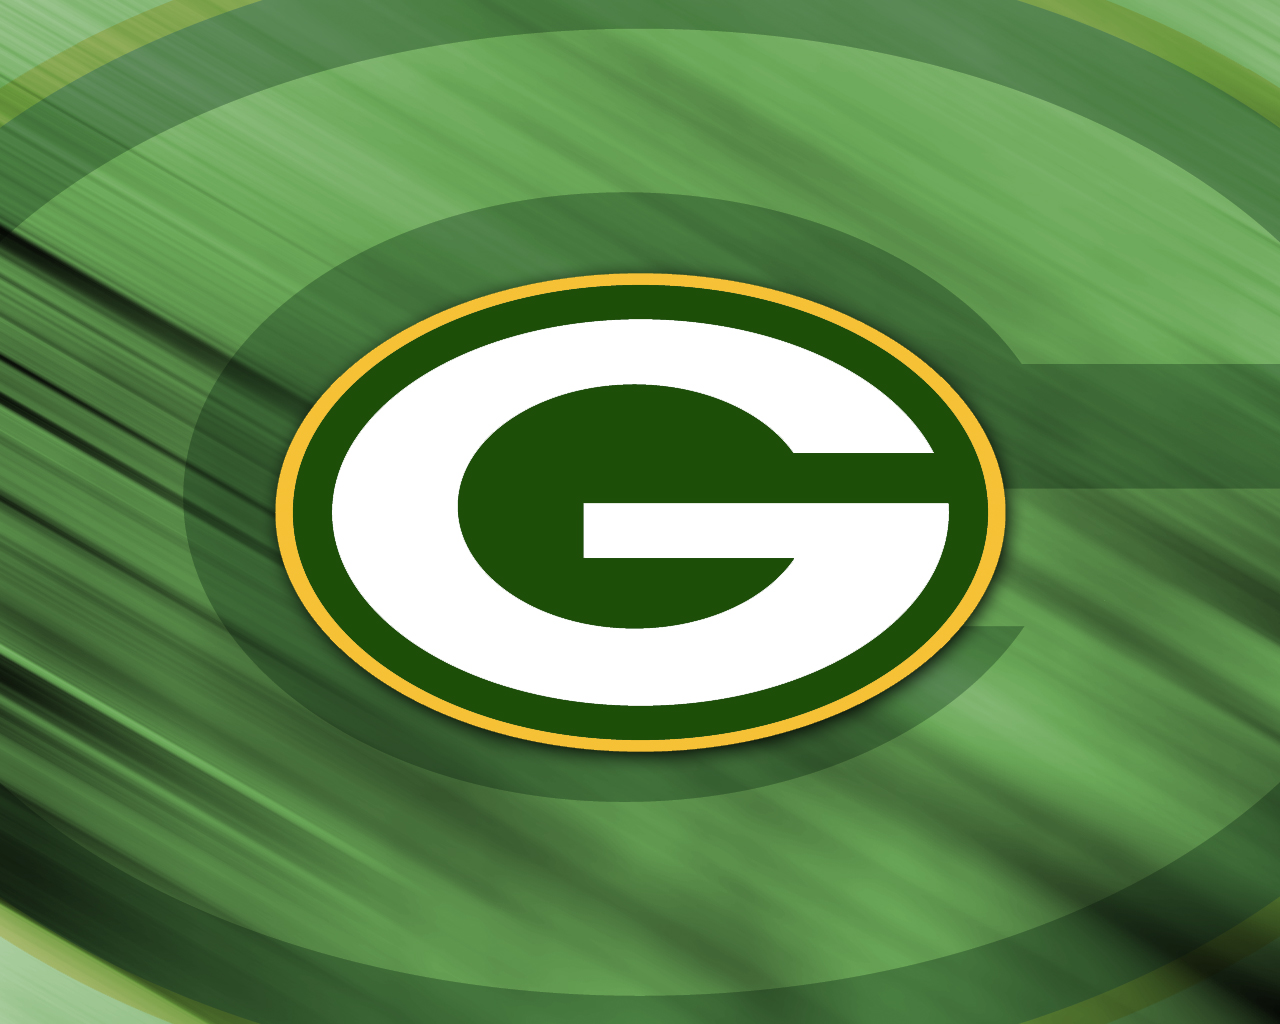 clip art for green bay packers - photo #22